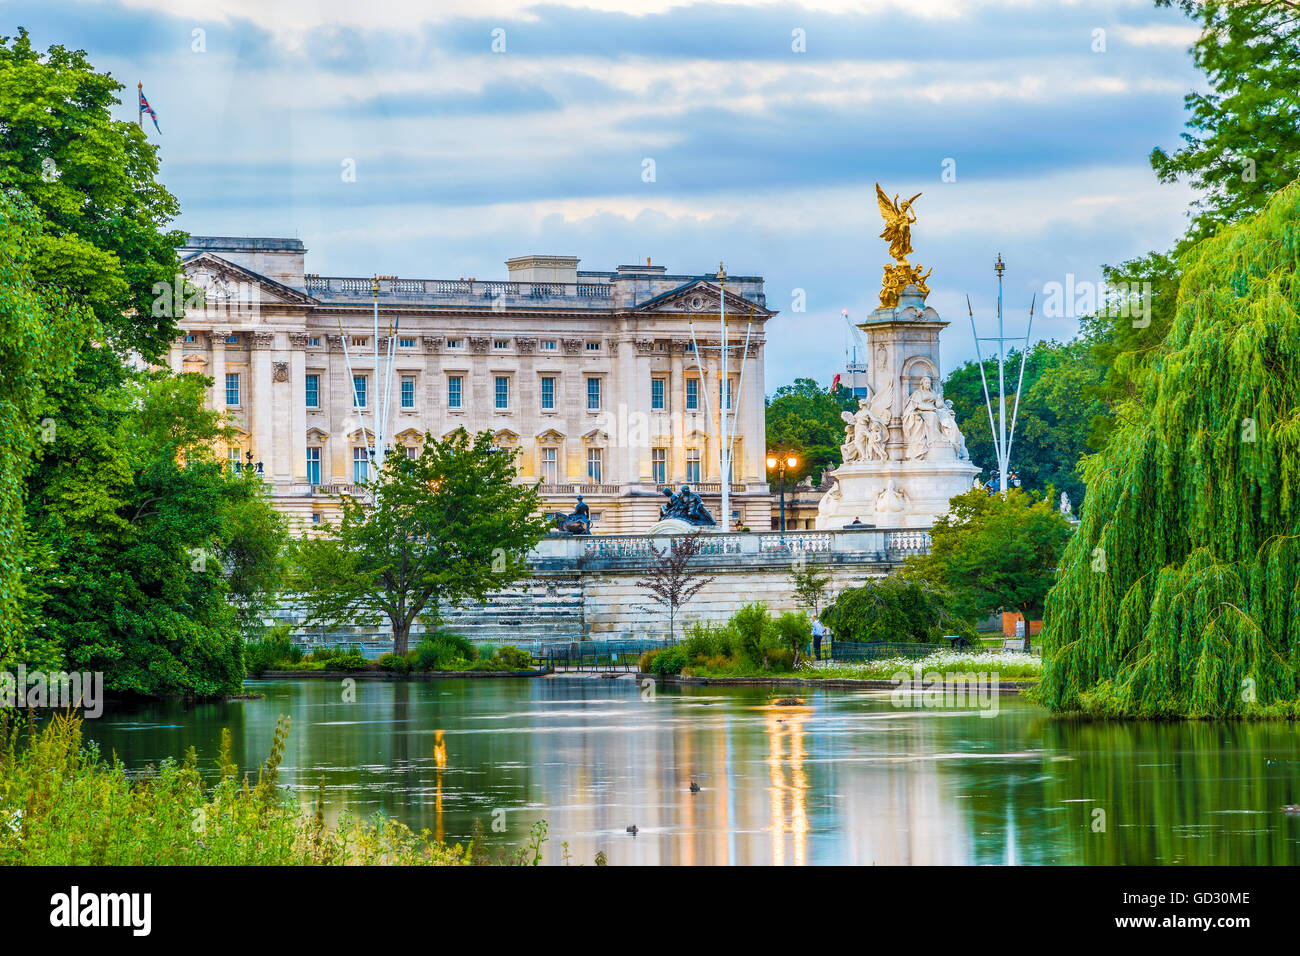 Buckingham Palace seen from St. James Park in London - Stock Image